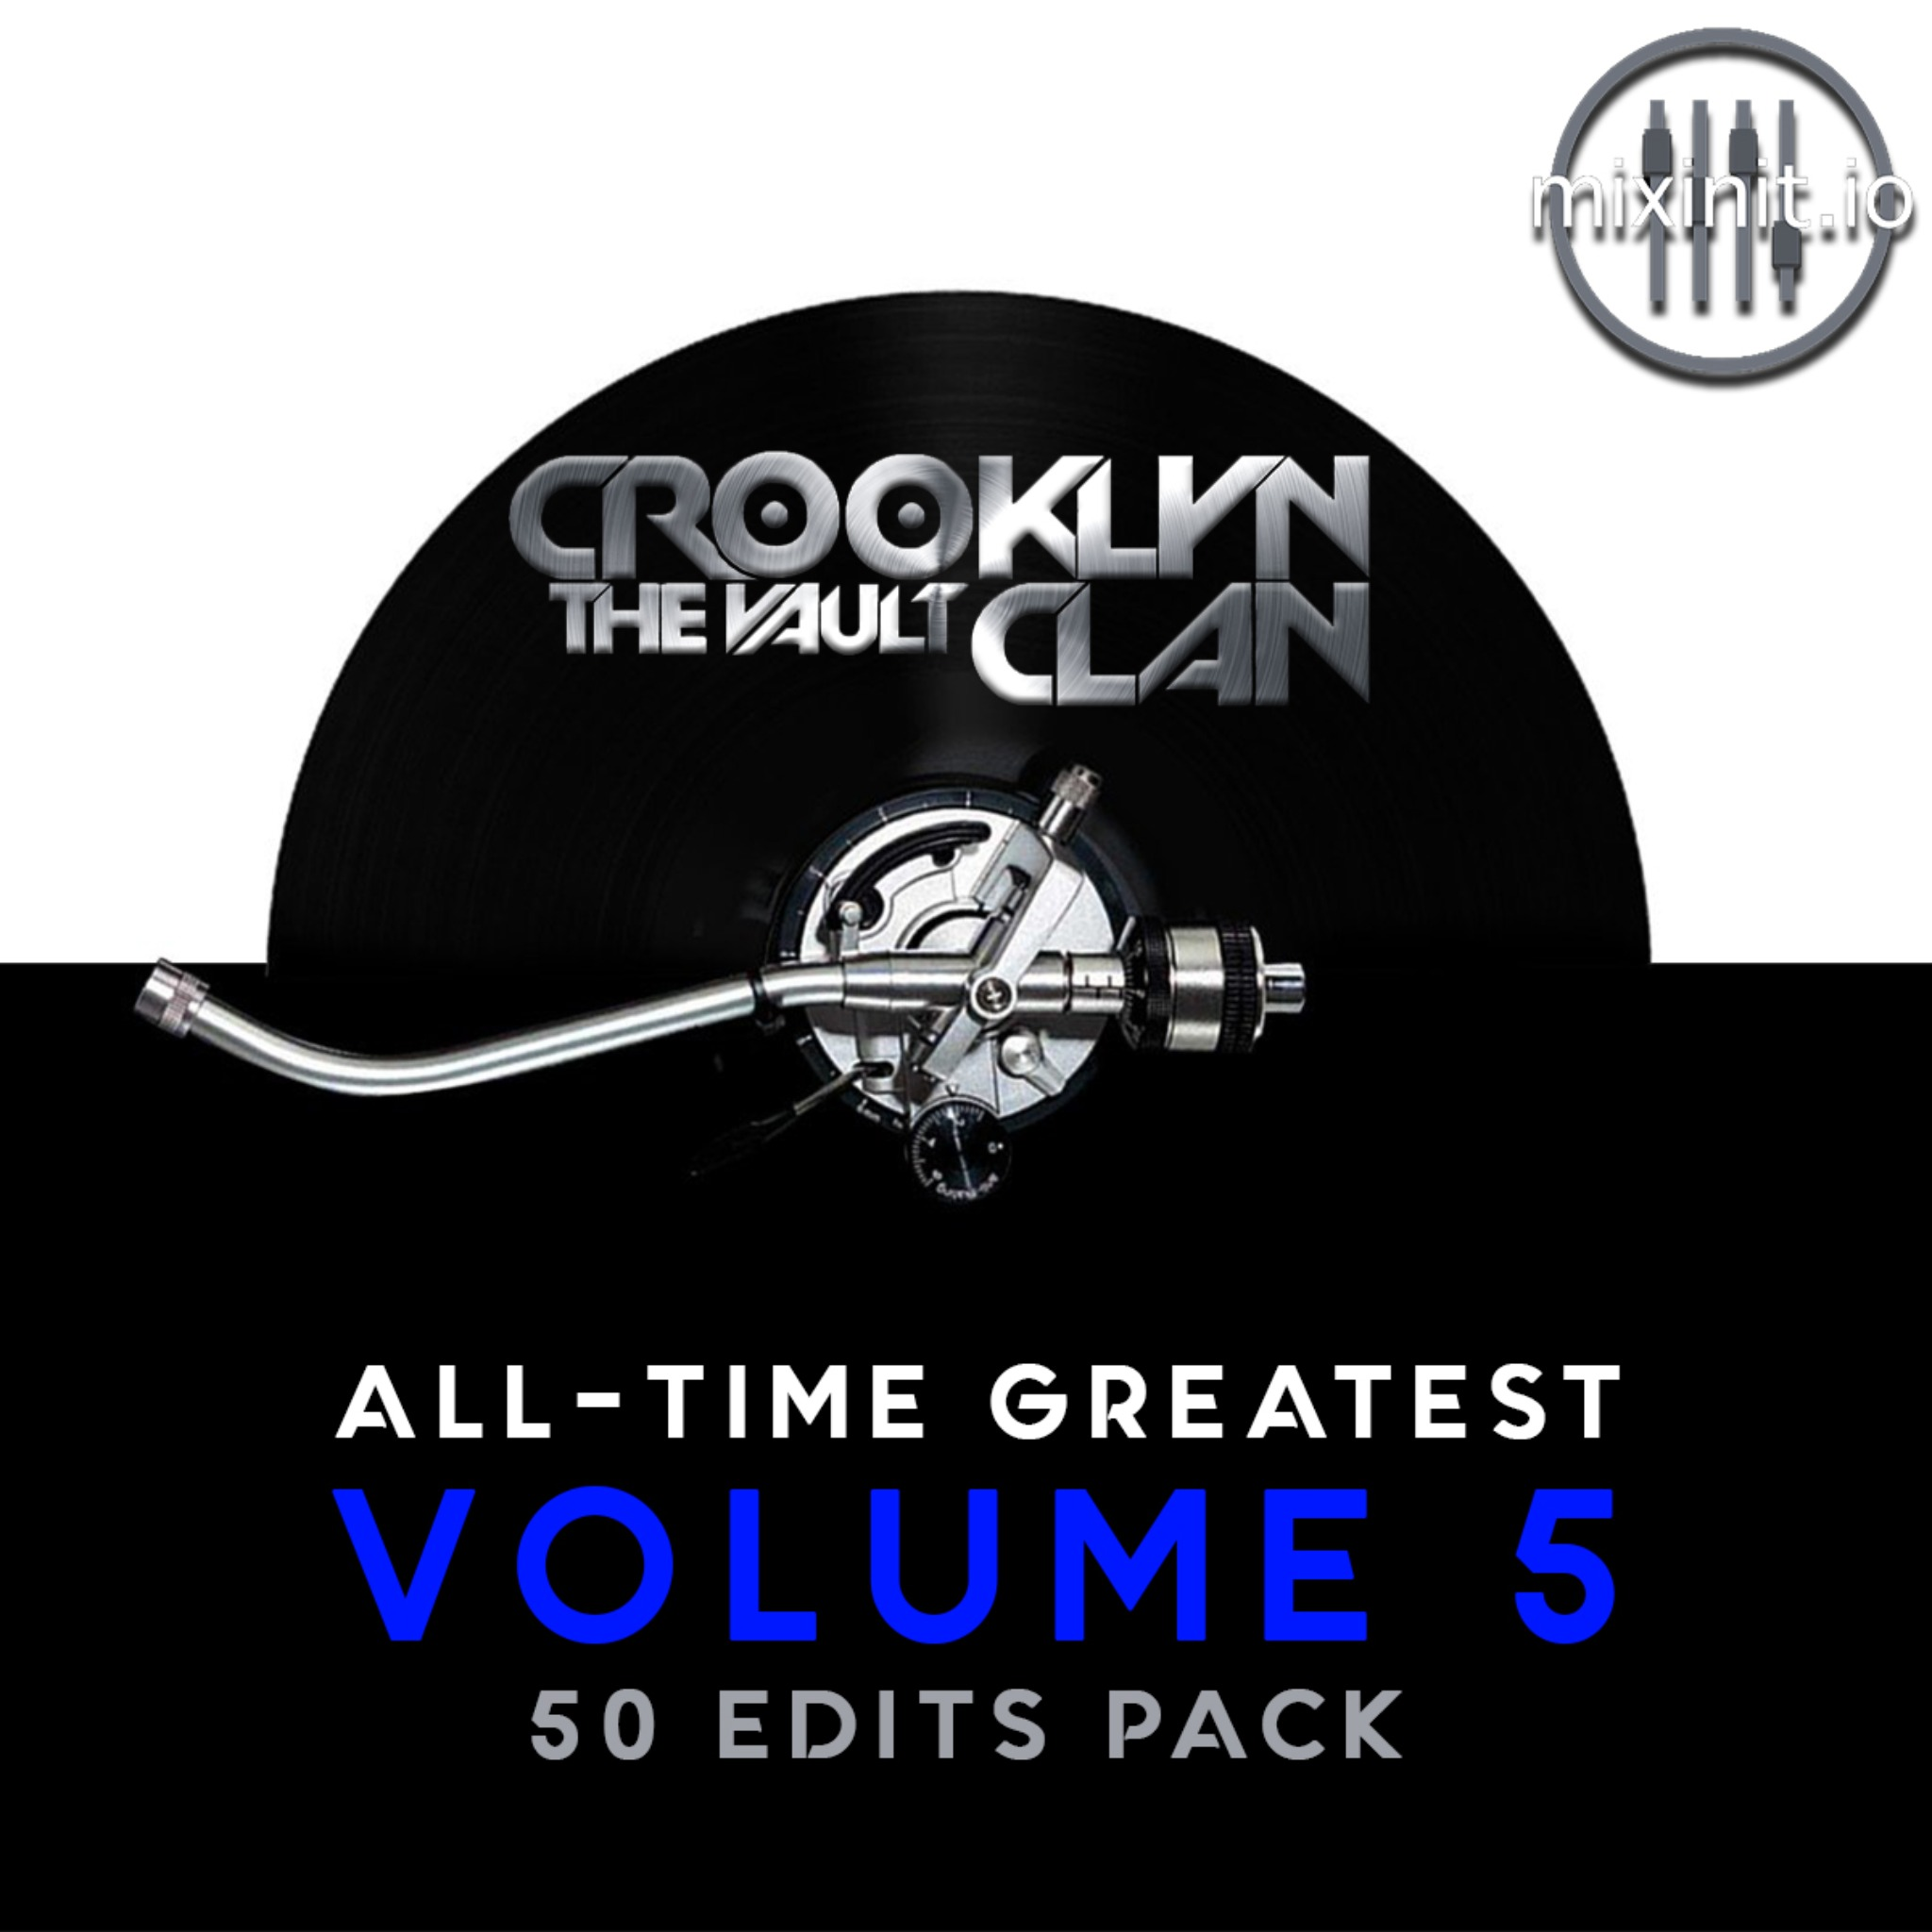 Best of the Classic Crooklyn Clan Vault Vol. 5 (Various Editors)